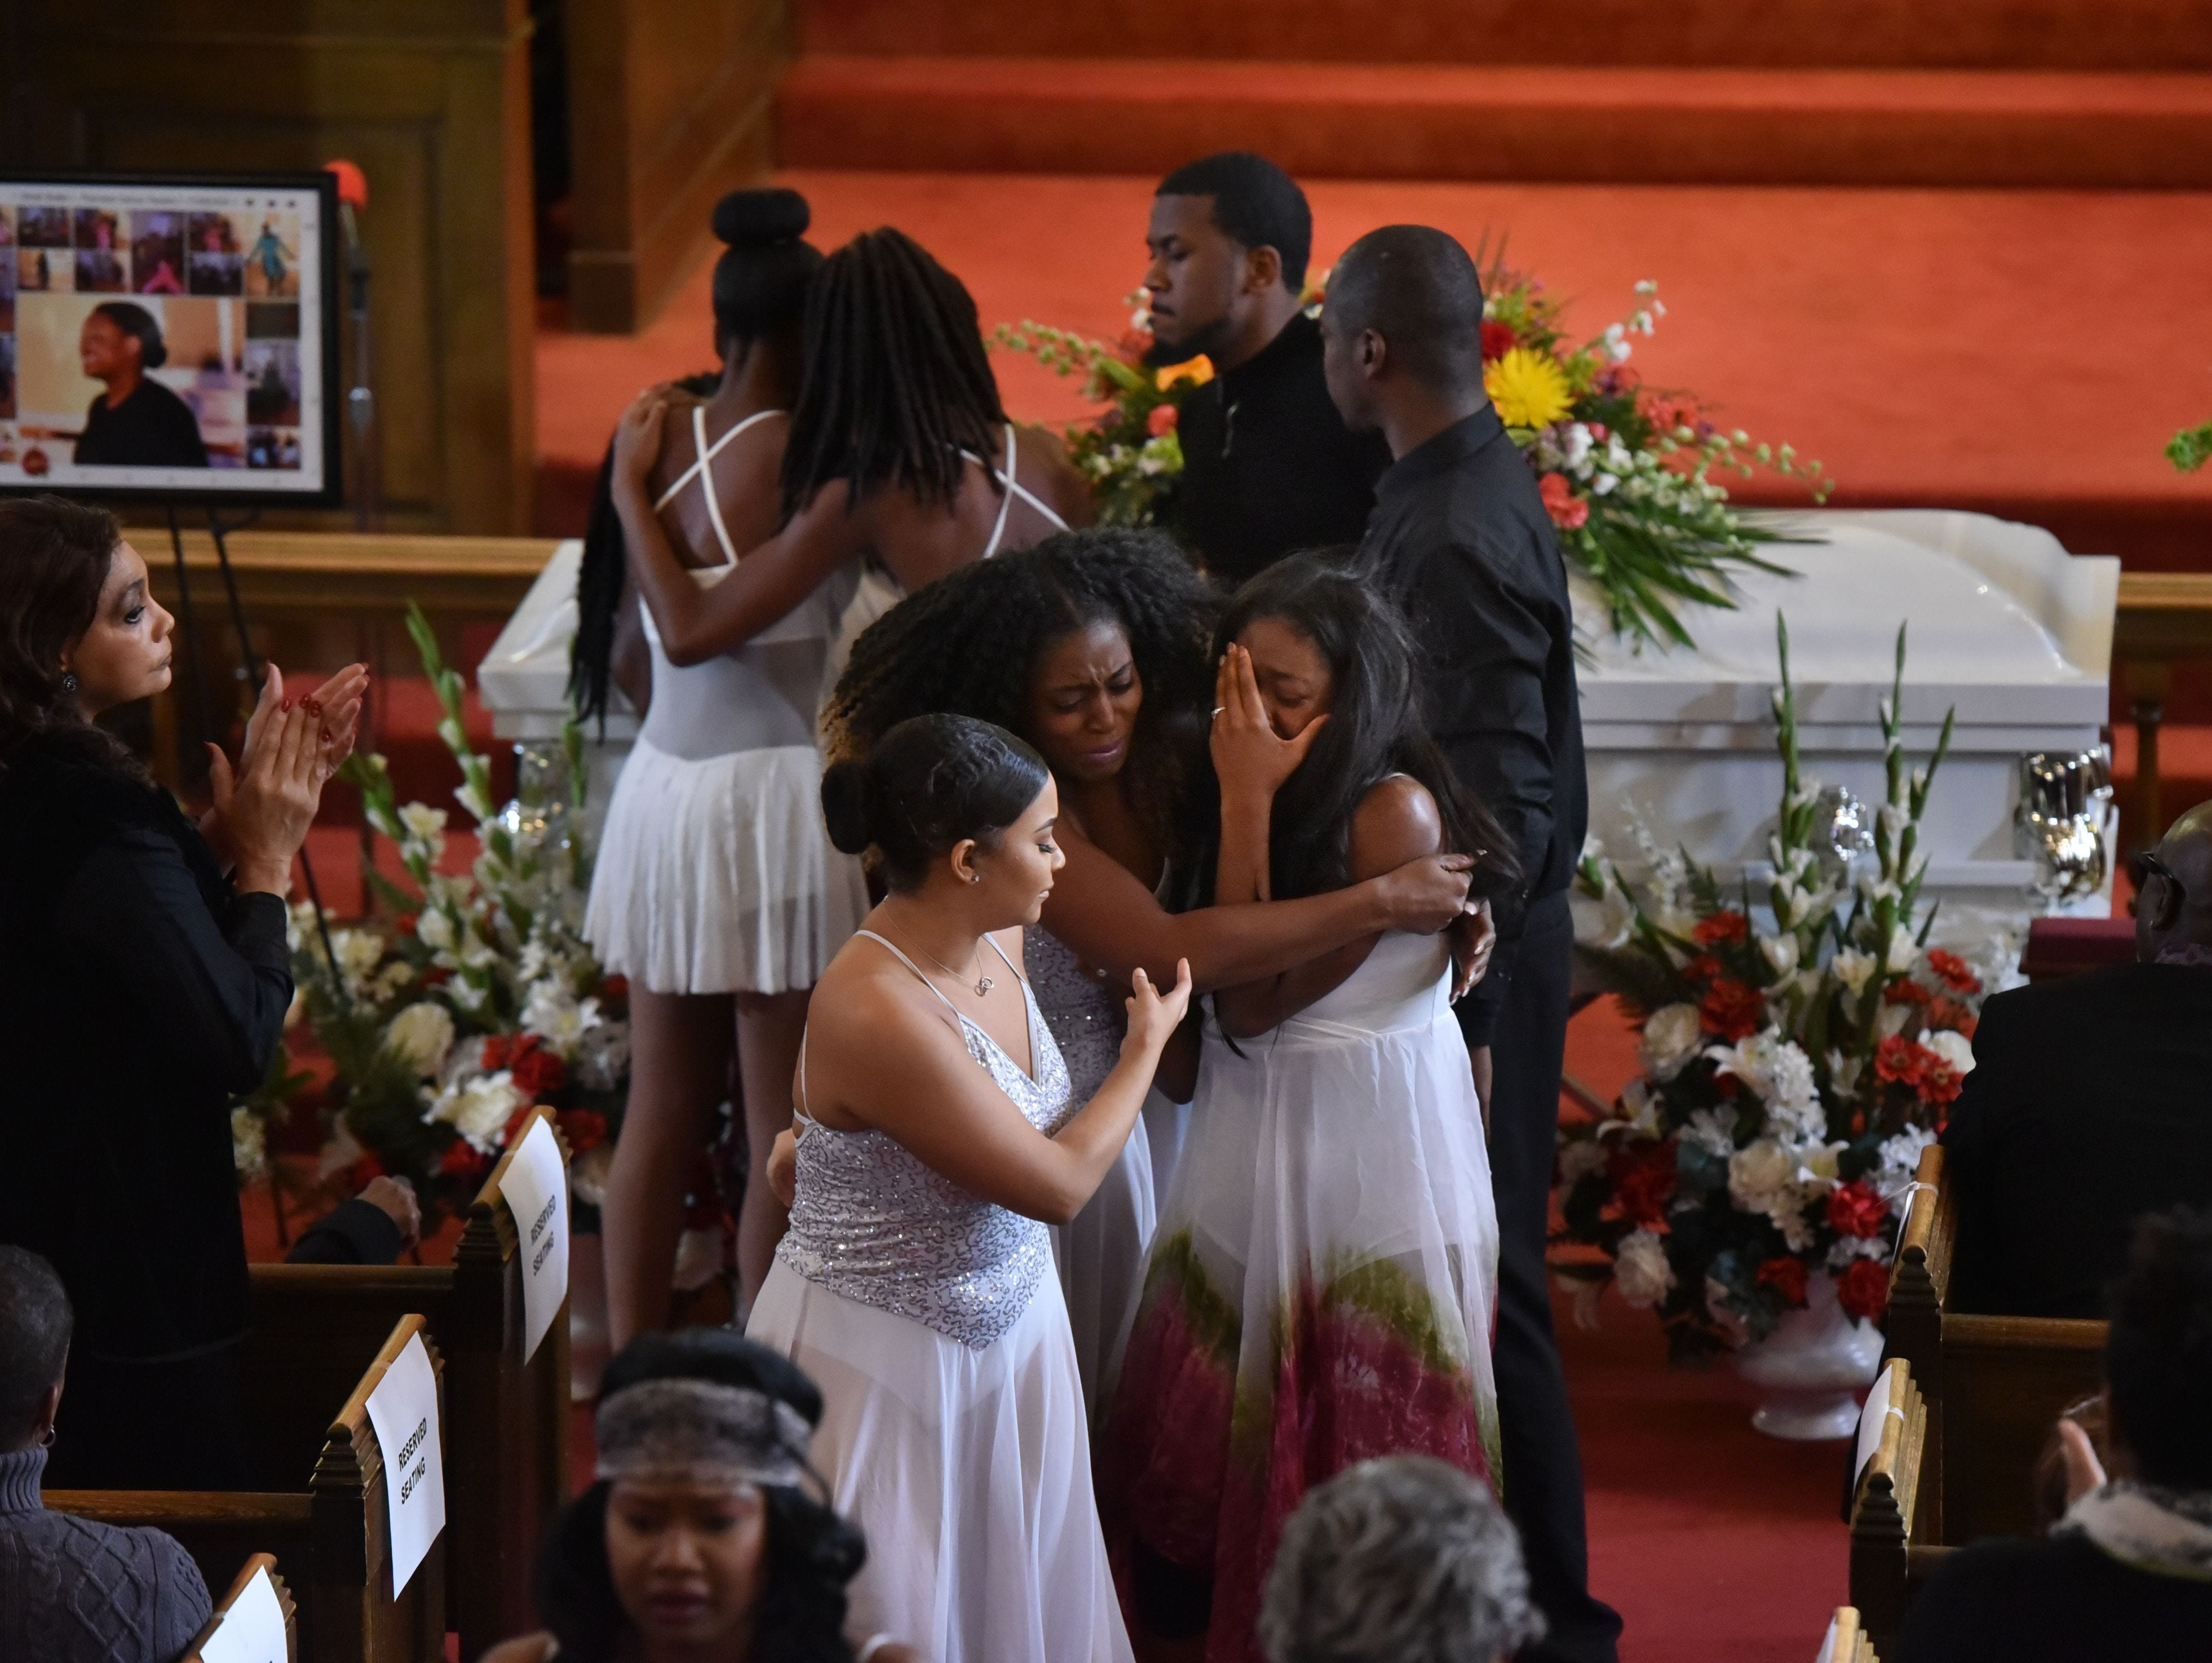 Members of Premiere Dance Theatre become emotional after performing at the funeral for Sarah Butler.